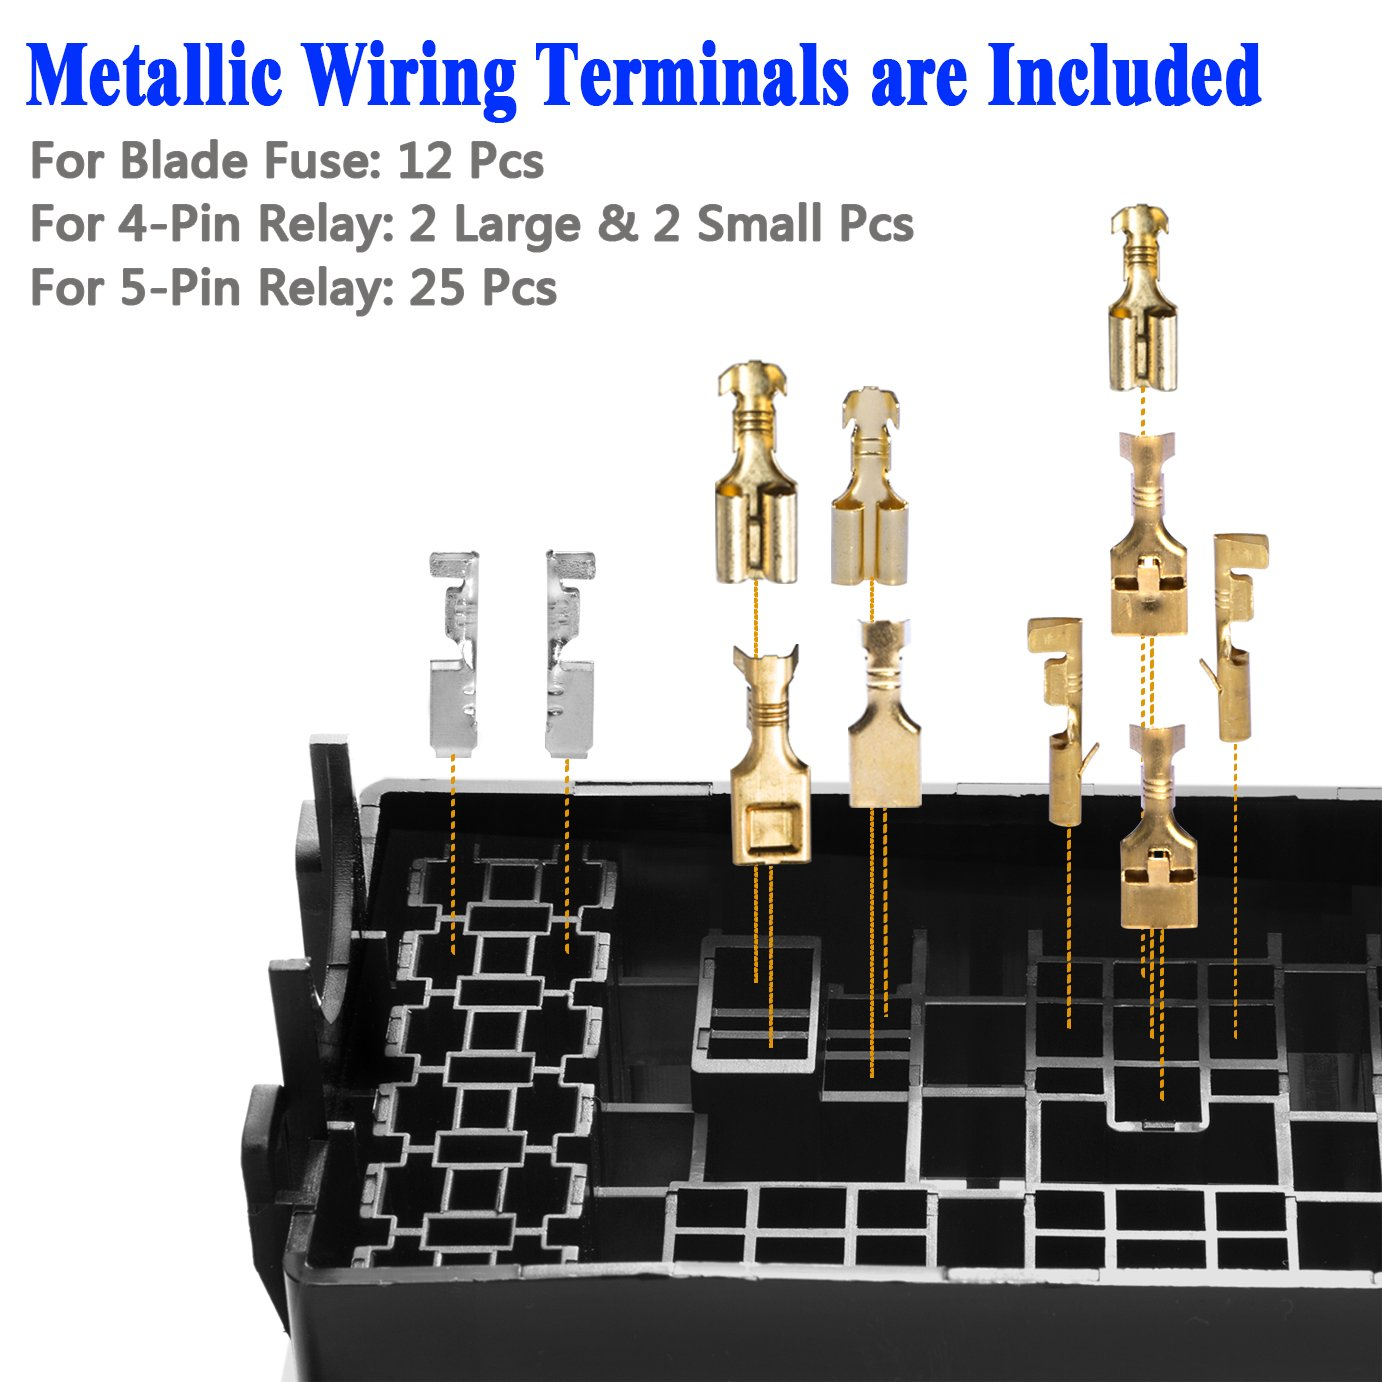 Dedc 12 Slot Relay Box 12v Holder With 41pcs Metallic Fuse Terminals Wiring For Automotive And Marine Use Holding Bosch Style 40 30a 5 Pin Relays